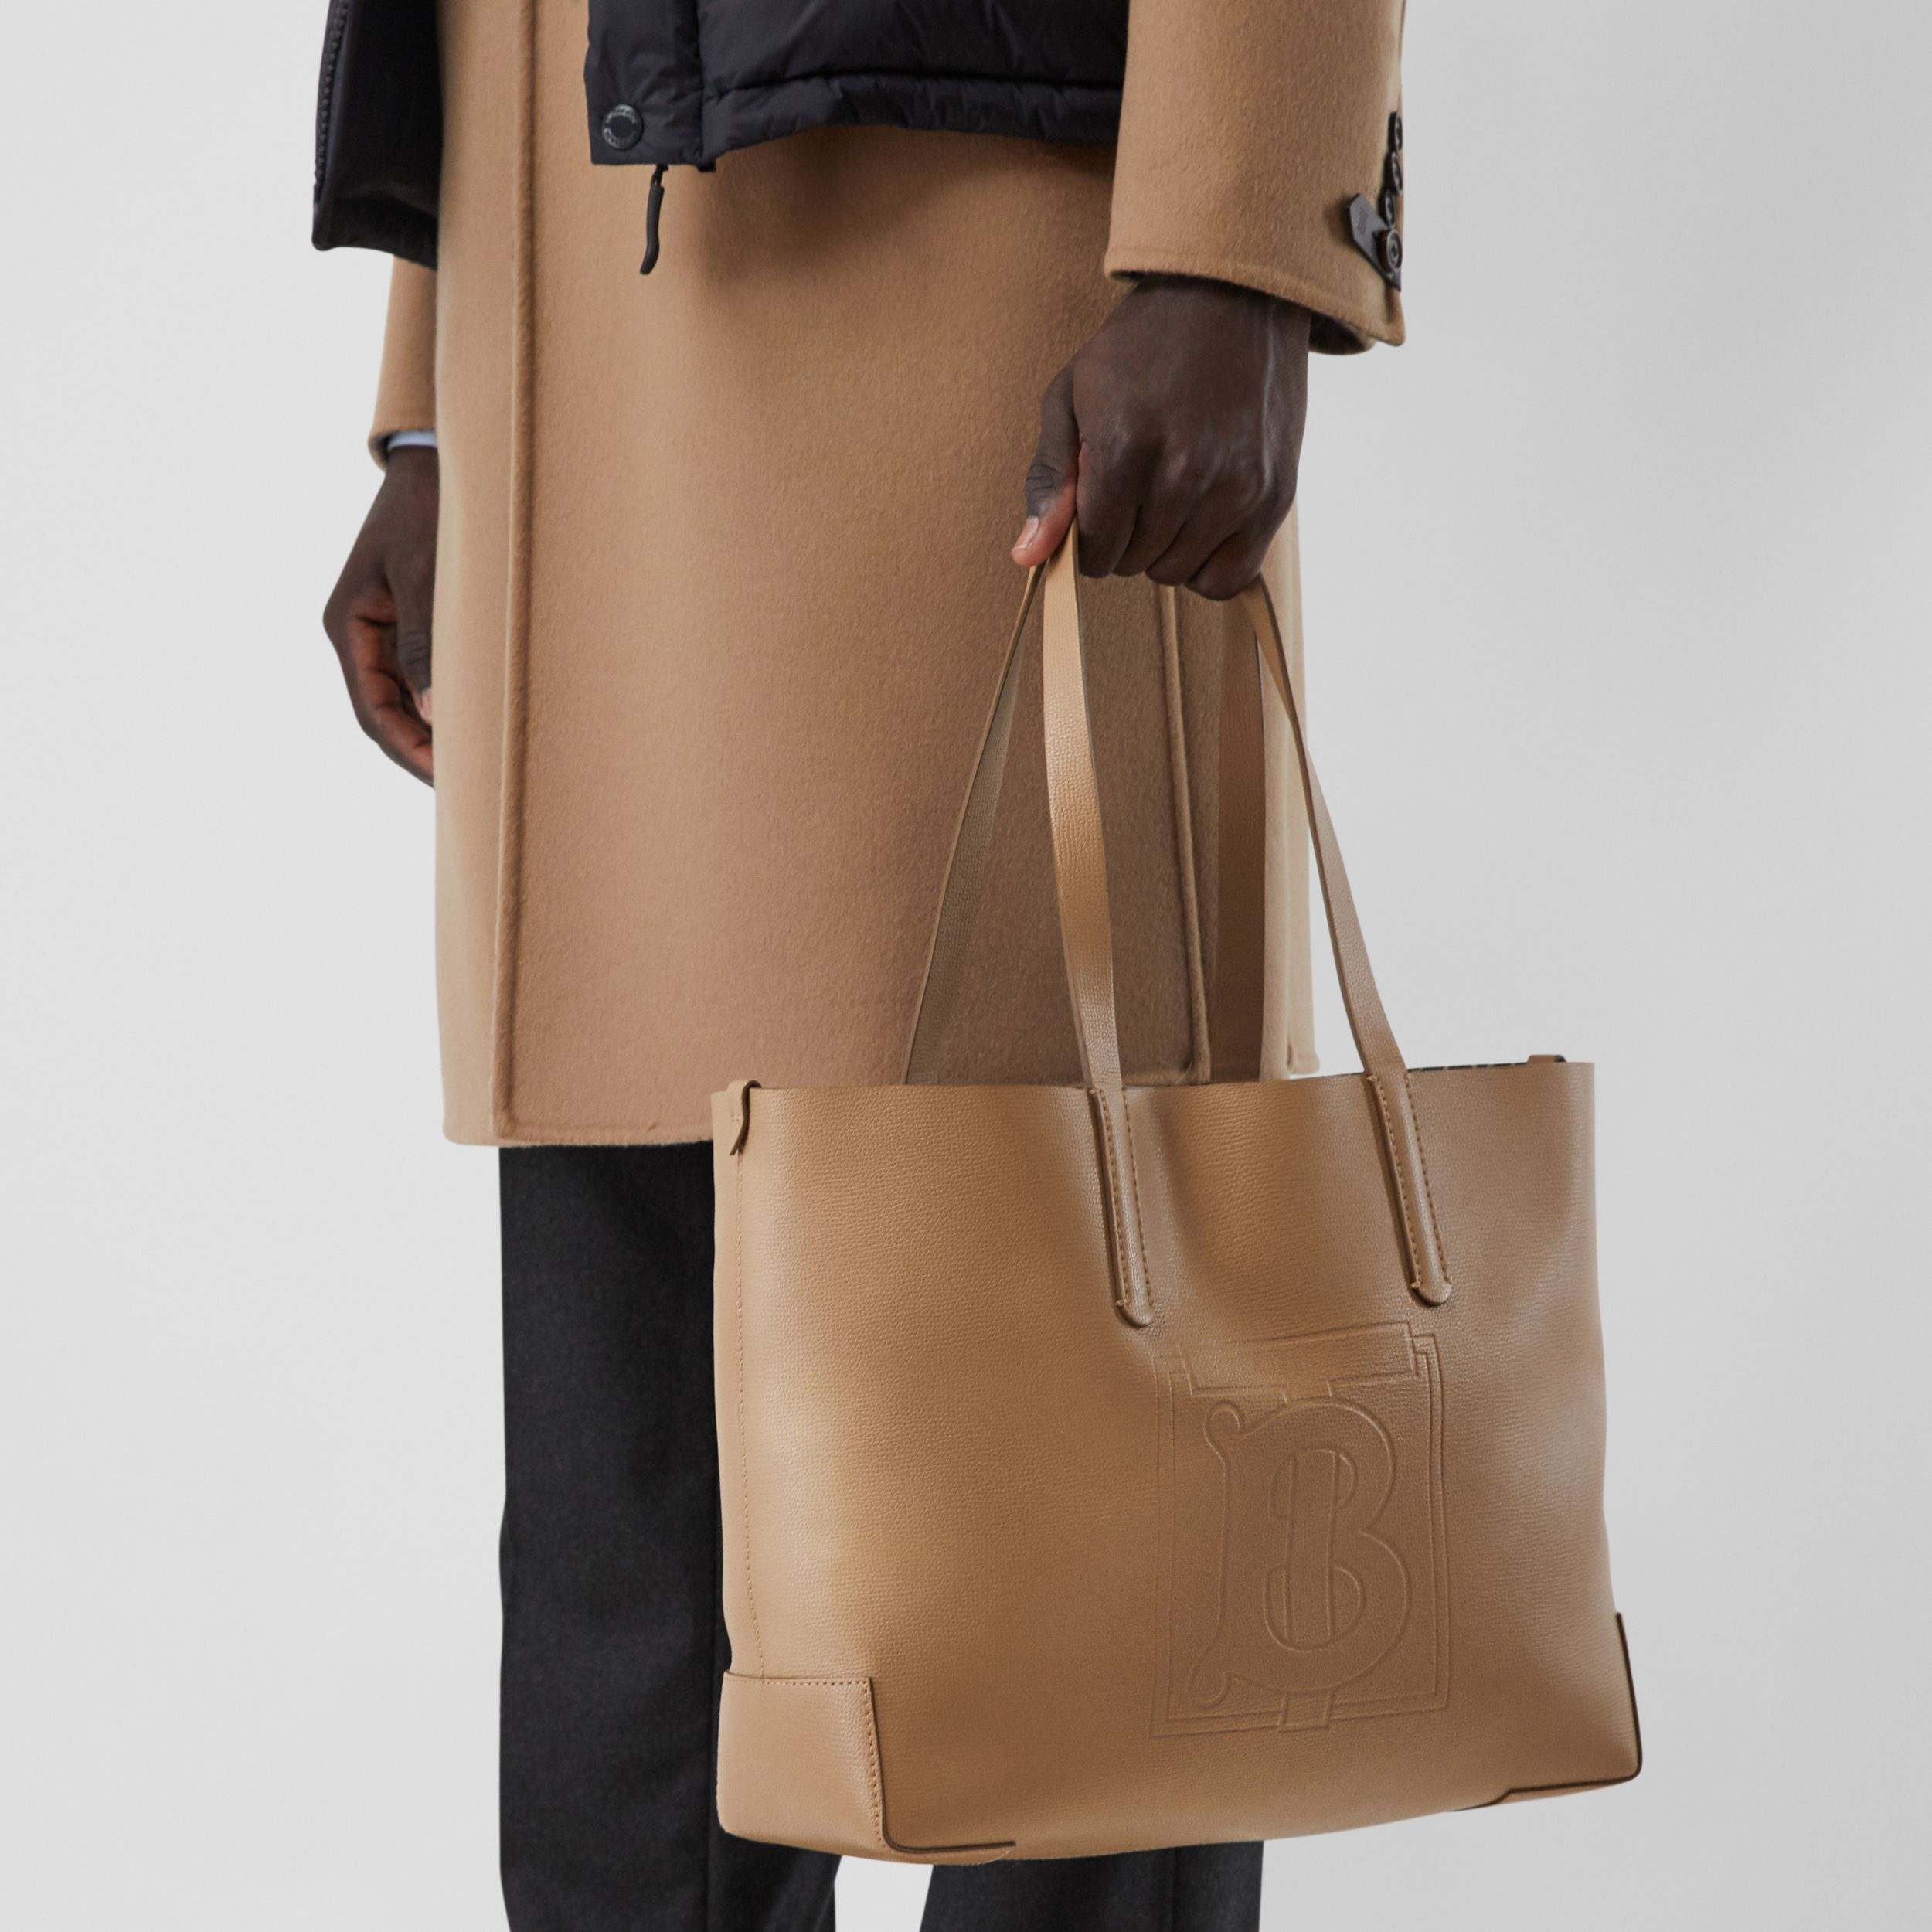 Embossed Monogram Motif Leather Tote in Camel - Women | Burberry - 4